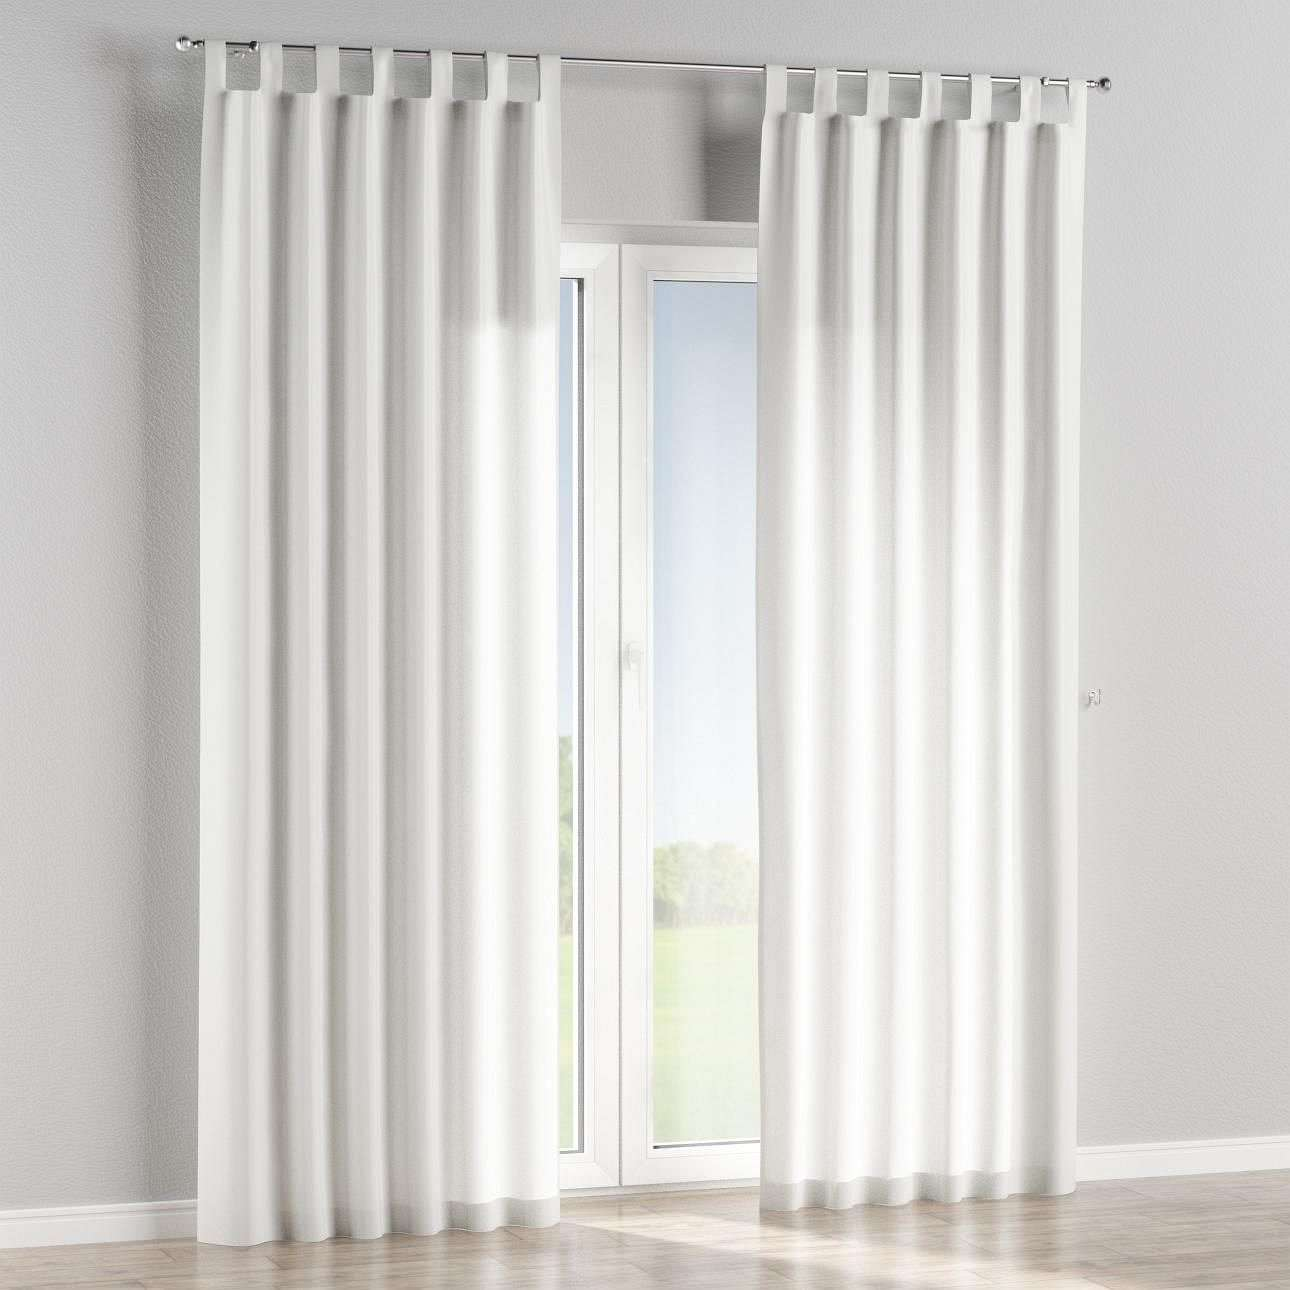 Tab top curtains in collection Norge, fabric: 150-18